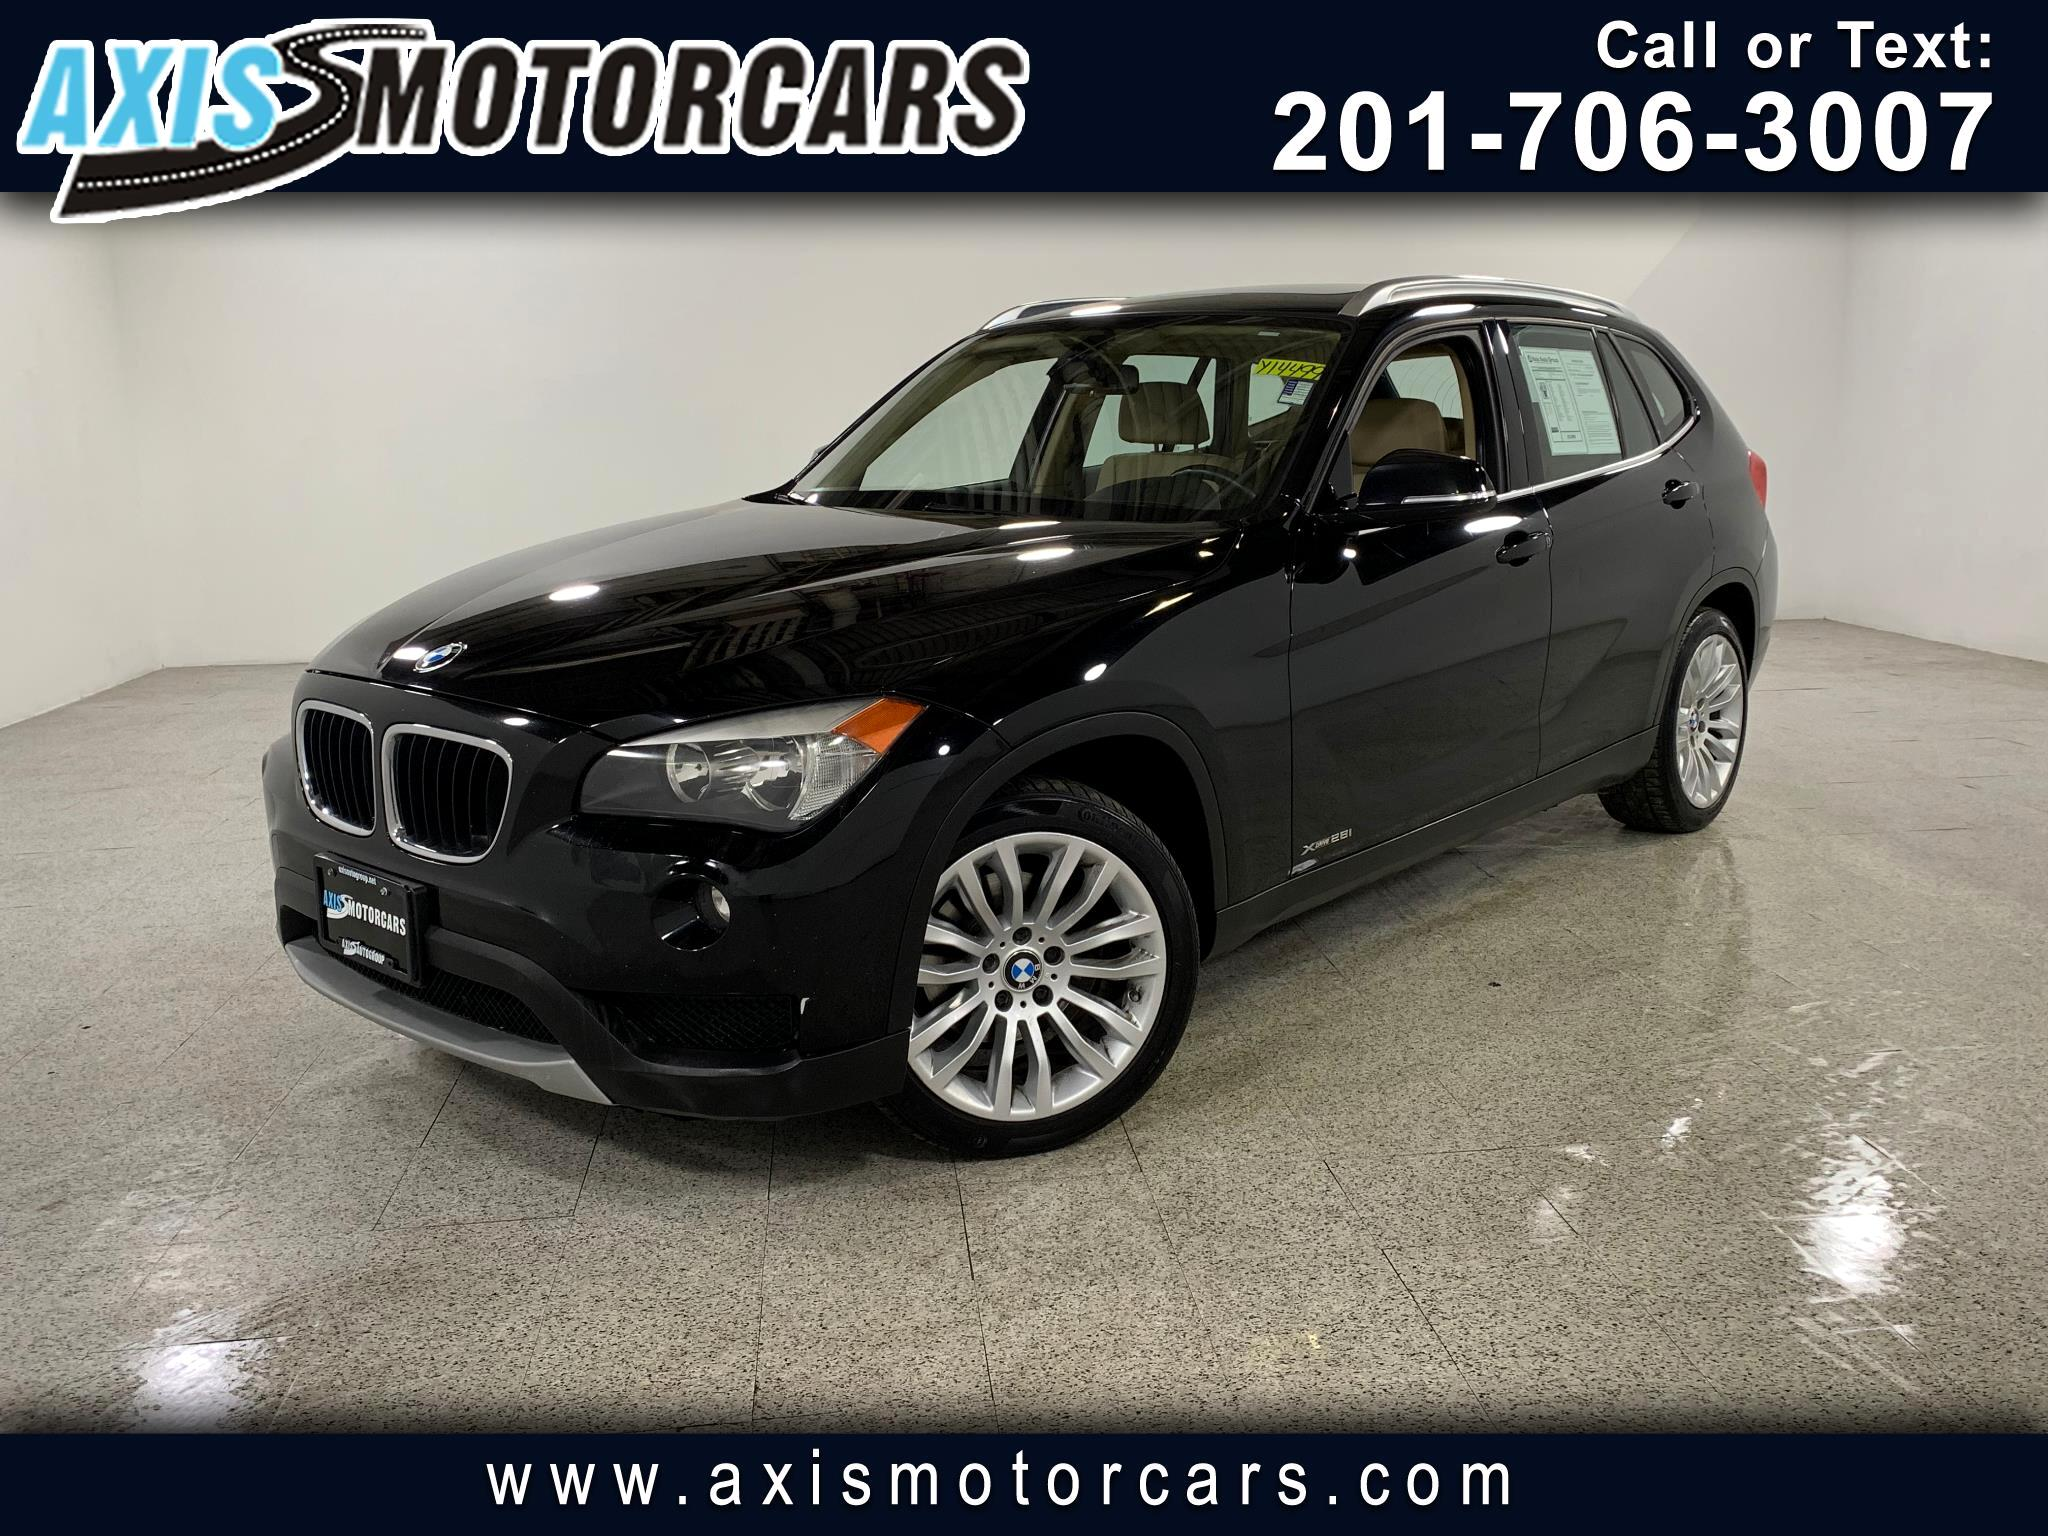 2014 BMW X1 w/Panoramic Roof Leather